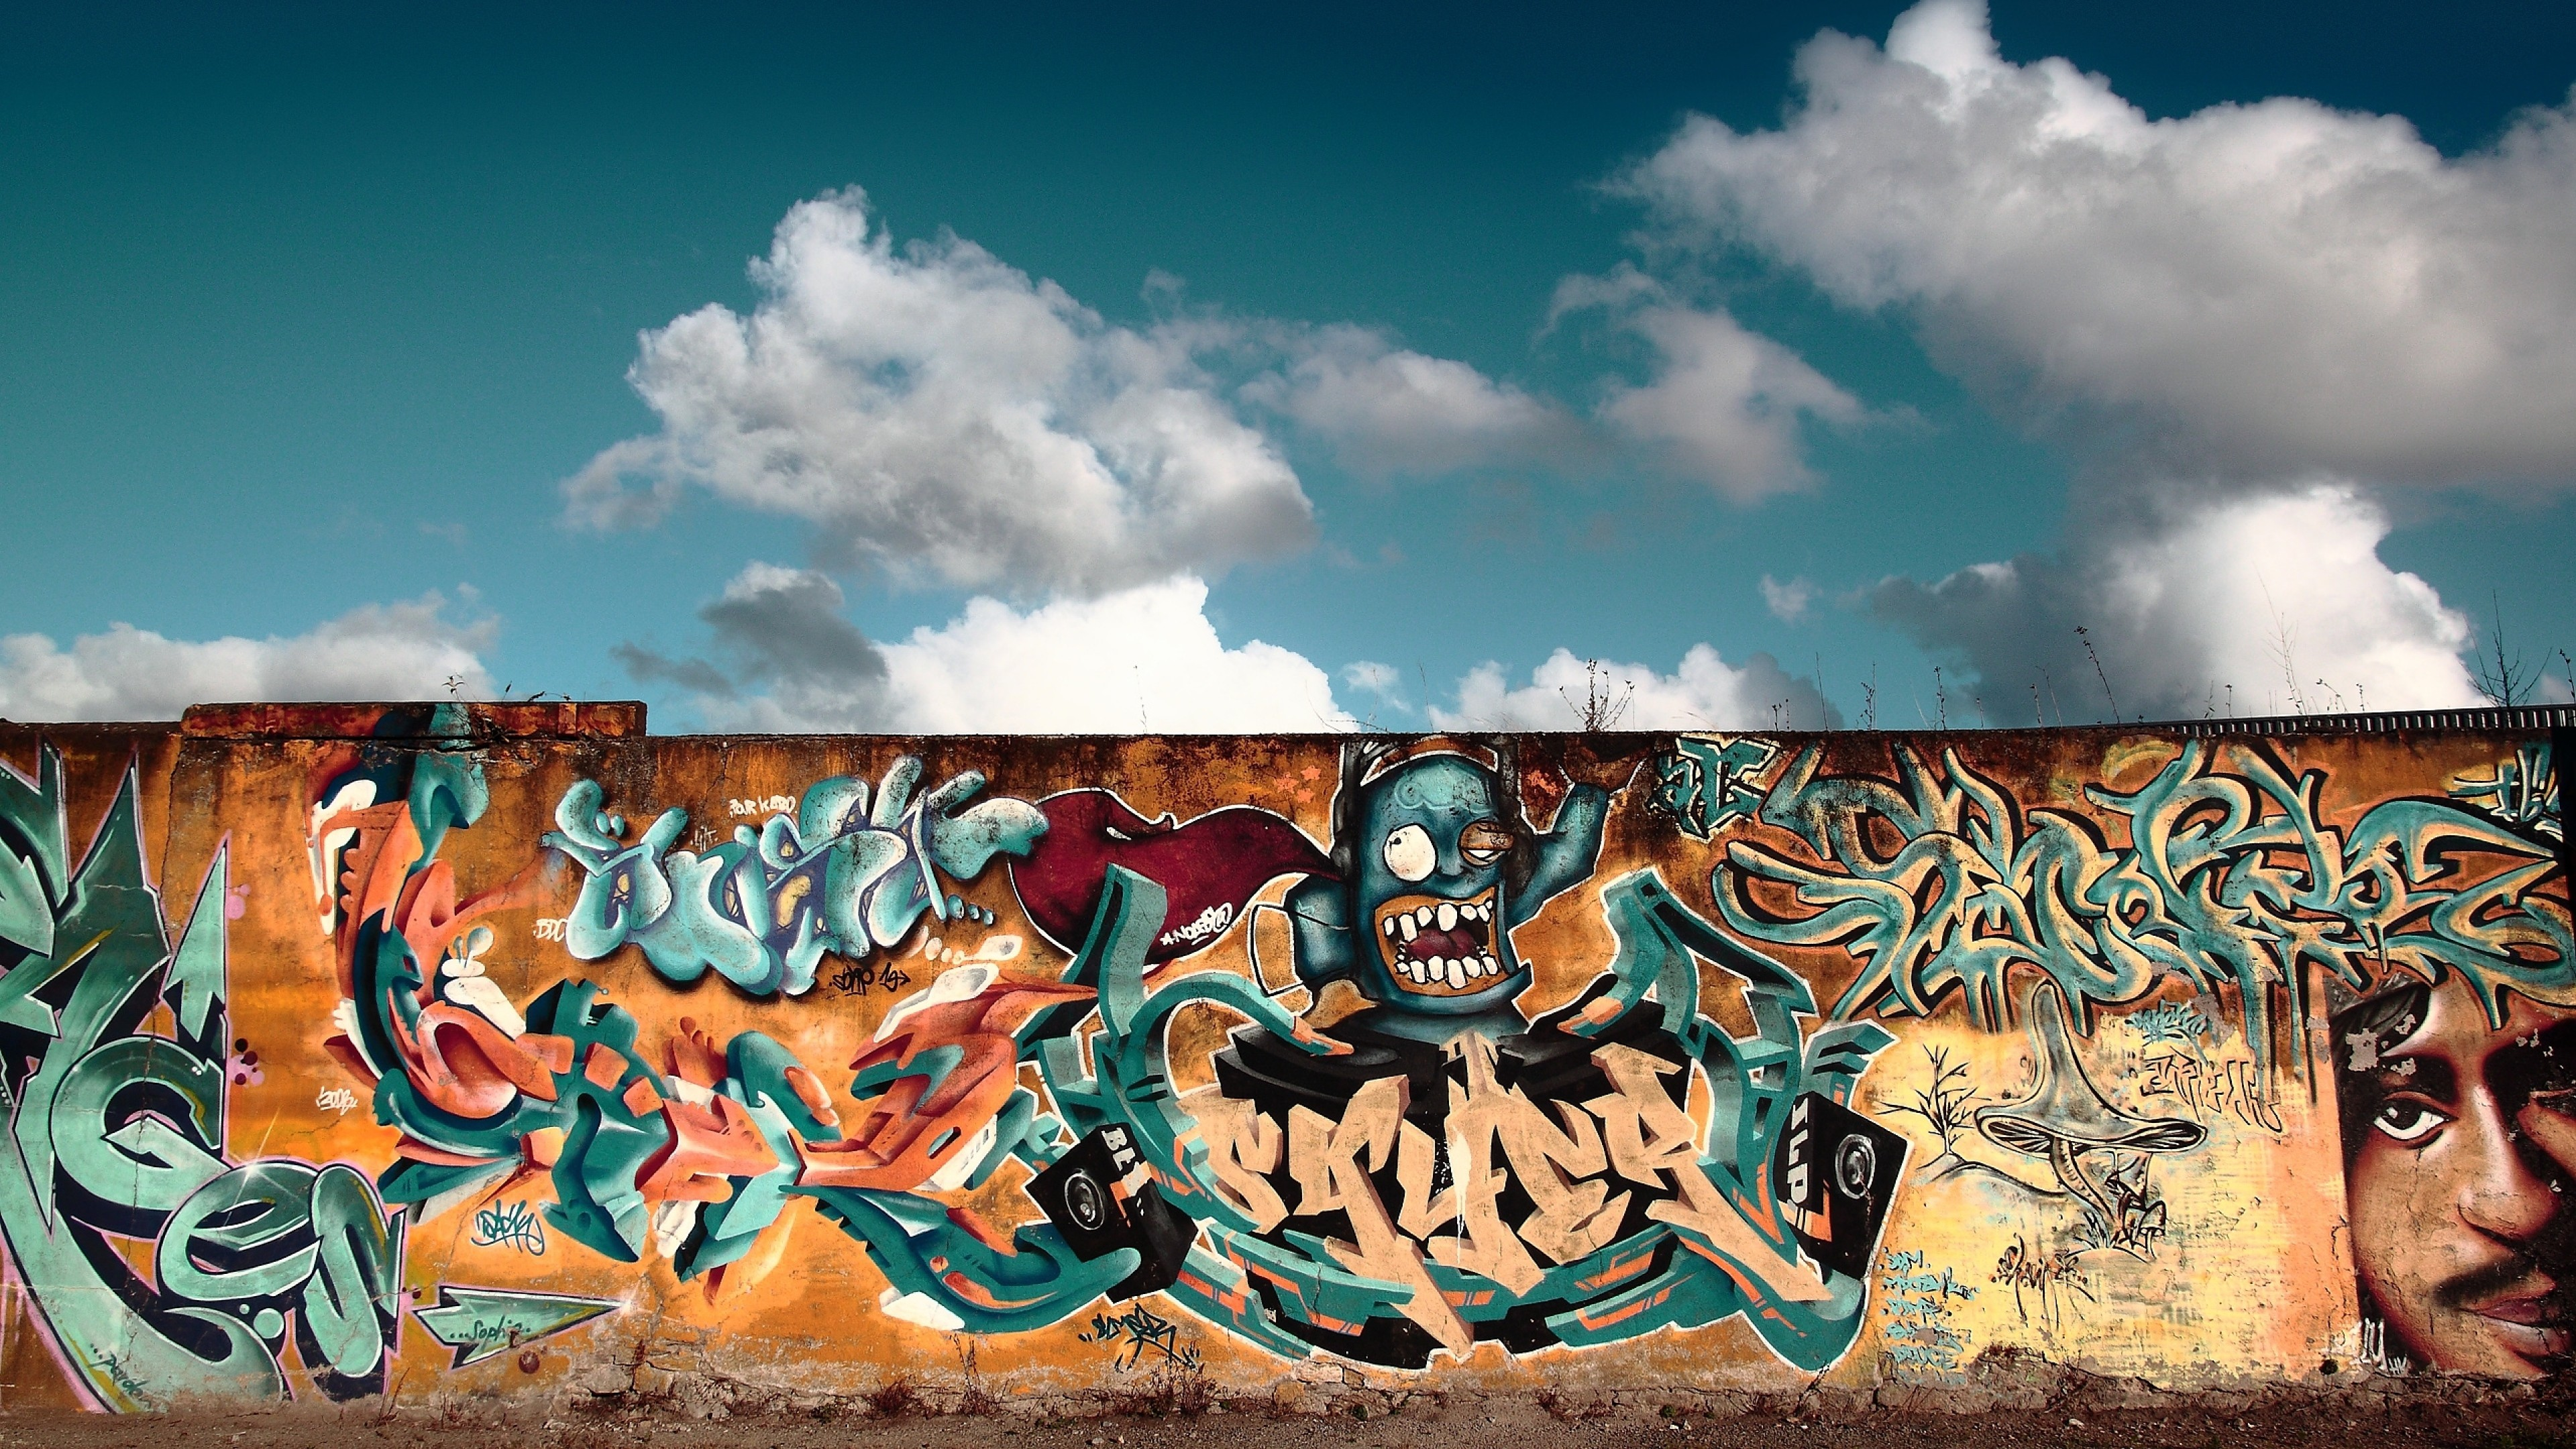 49 graffiti backgrounds download free amazing wallpapers for 3840x2160 preview wallpaper graffiti wall city colorful 3840x2160 voltagebd Image collections